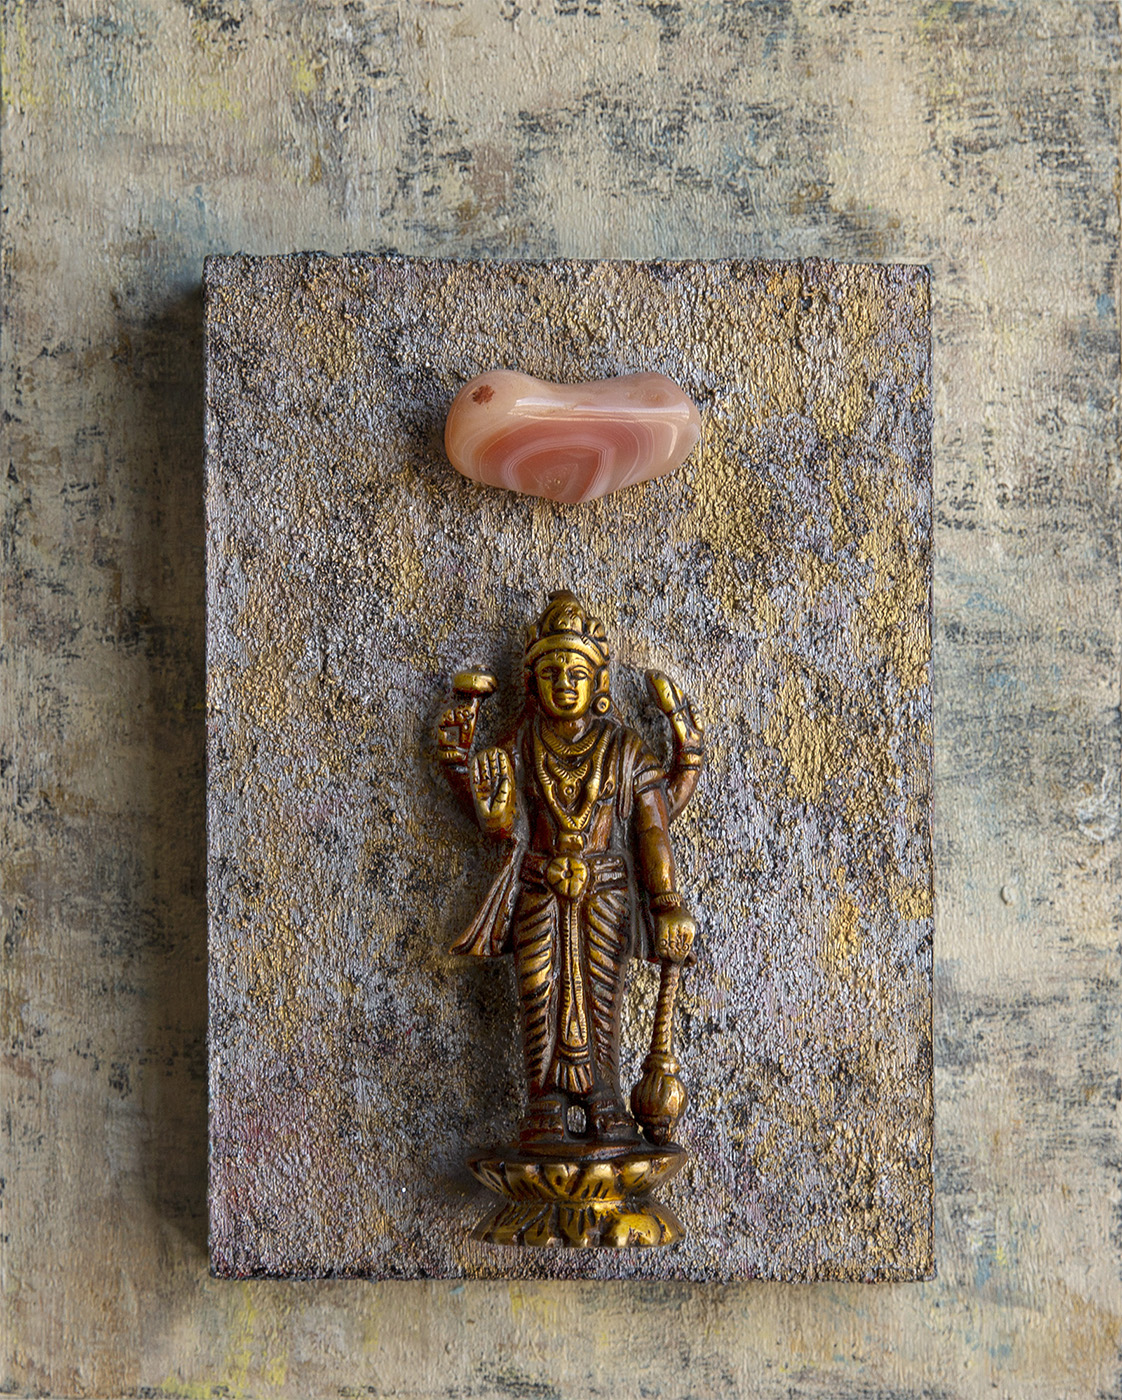 """Good Fortune, Positive Choices,""  Lakshmi with Carnelian, 2018 Acrylic, mixed media on cradled wood panels , 8"" x 10"" x 1.5""  Lakshmi is the HIndu deity of beauty, luxury and wealth, both material and  spiritual. Carnelian motivates for success, stimulates creativity, and helps trusting yourself and your perceptions.  © Marilyn Grad 2018"